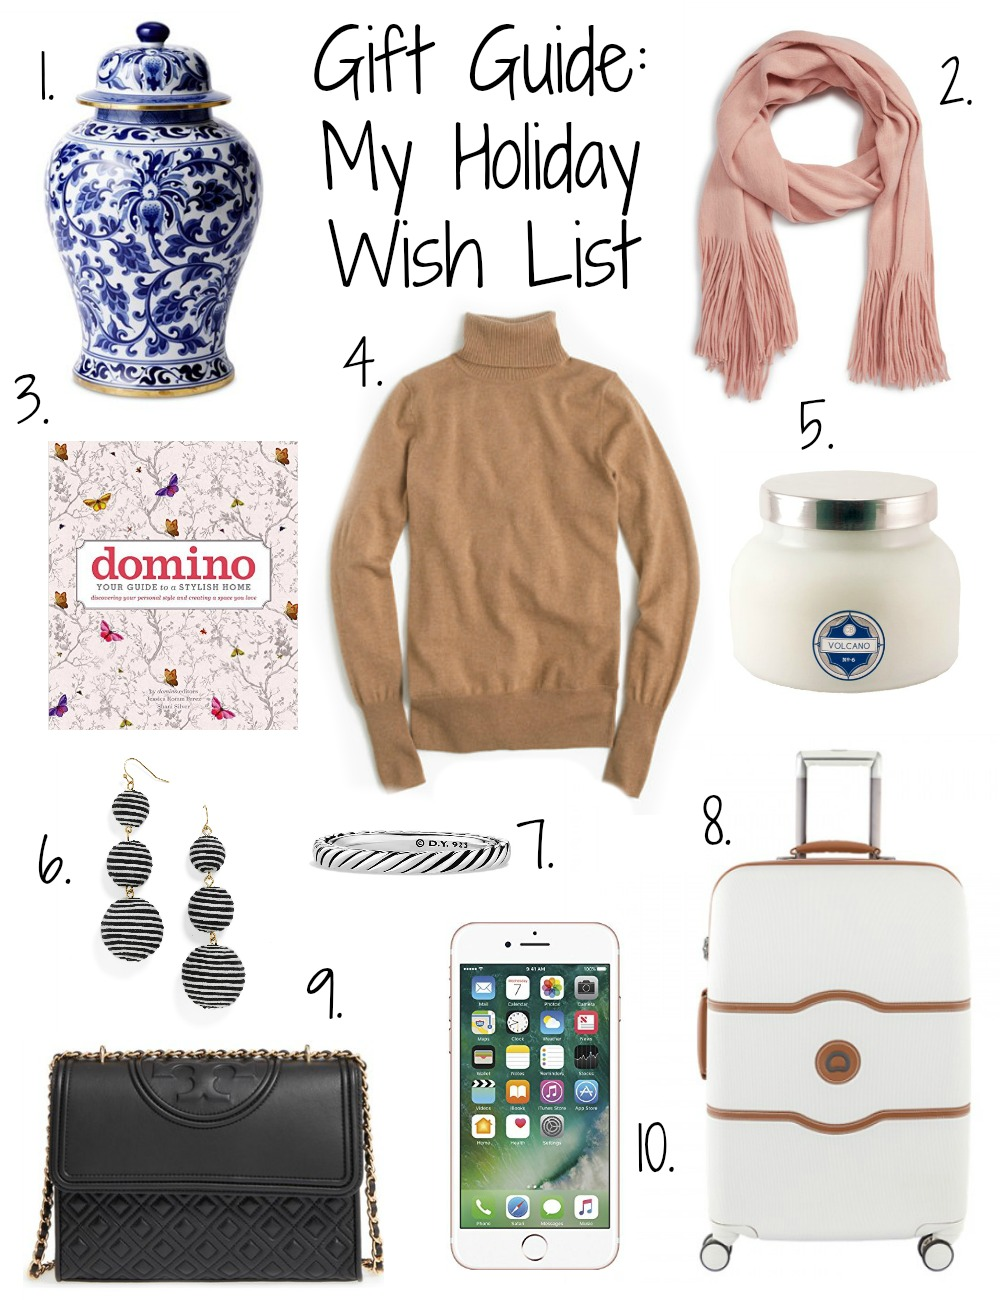 Gift Guide: My Holiday Wish List